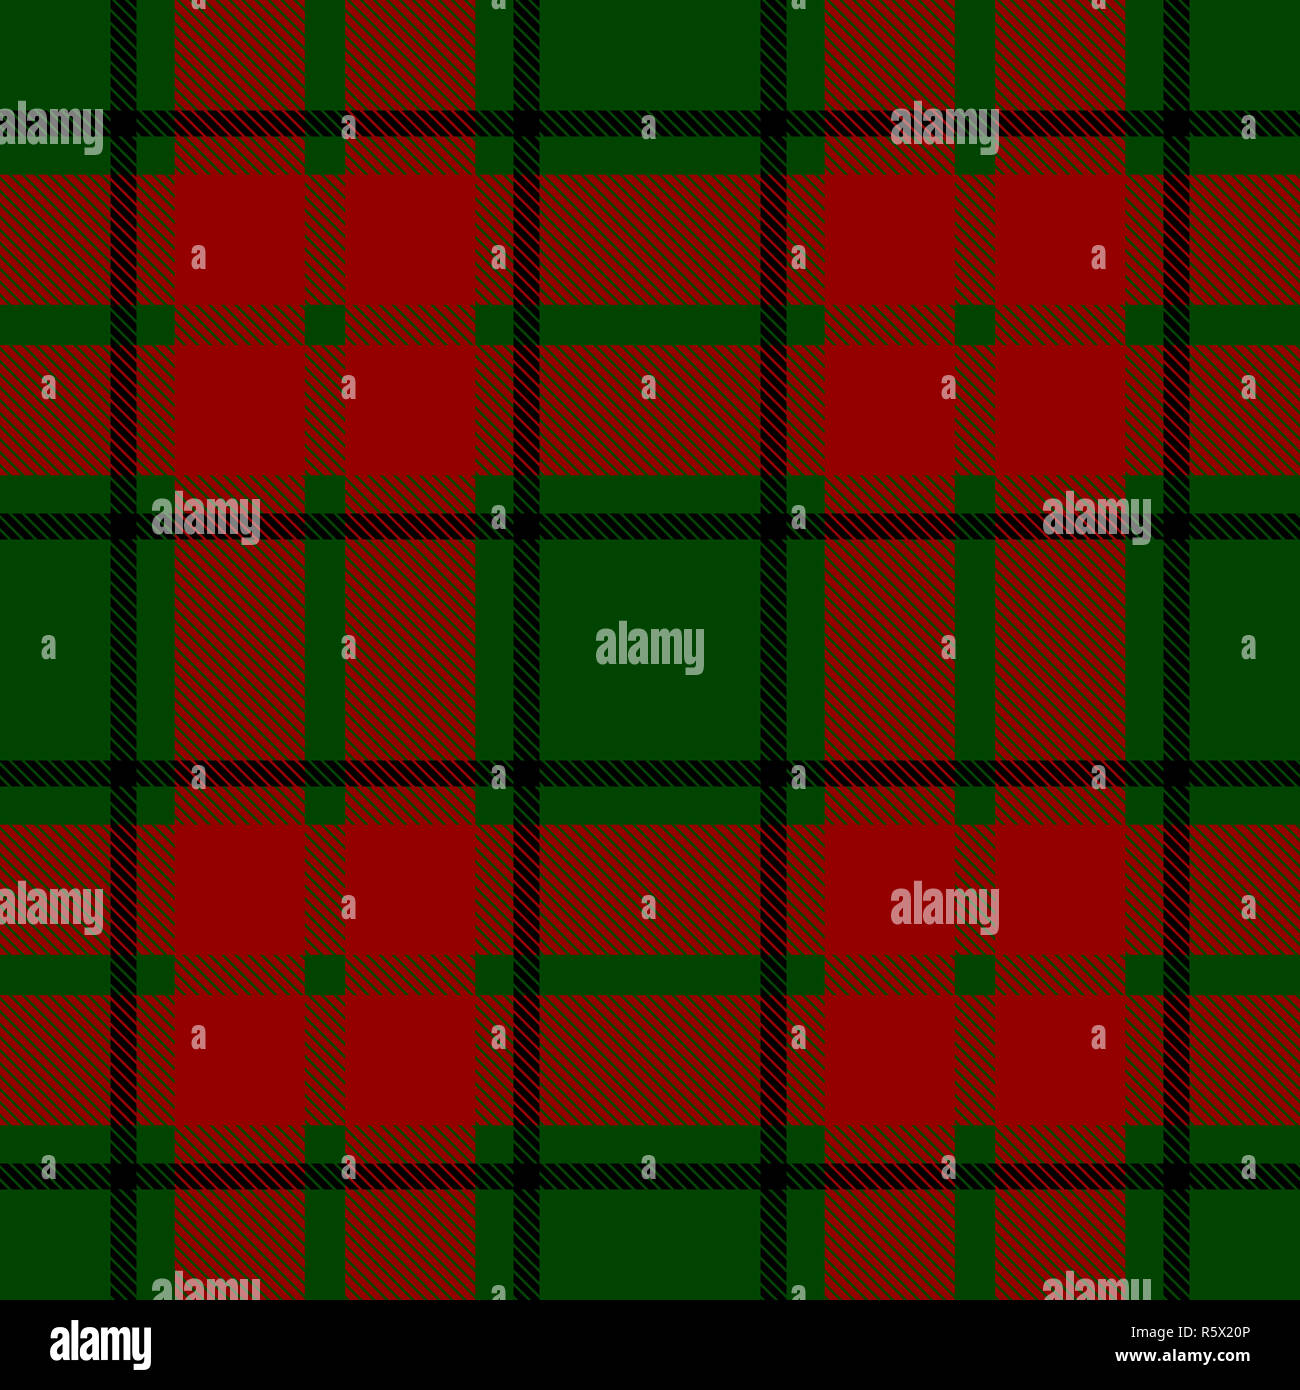 seamless christmas check pattern black green and red design for wallpaper fabric textile wrapping simple background R5X20P